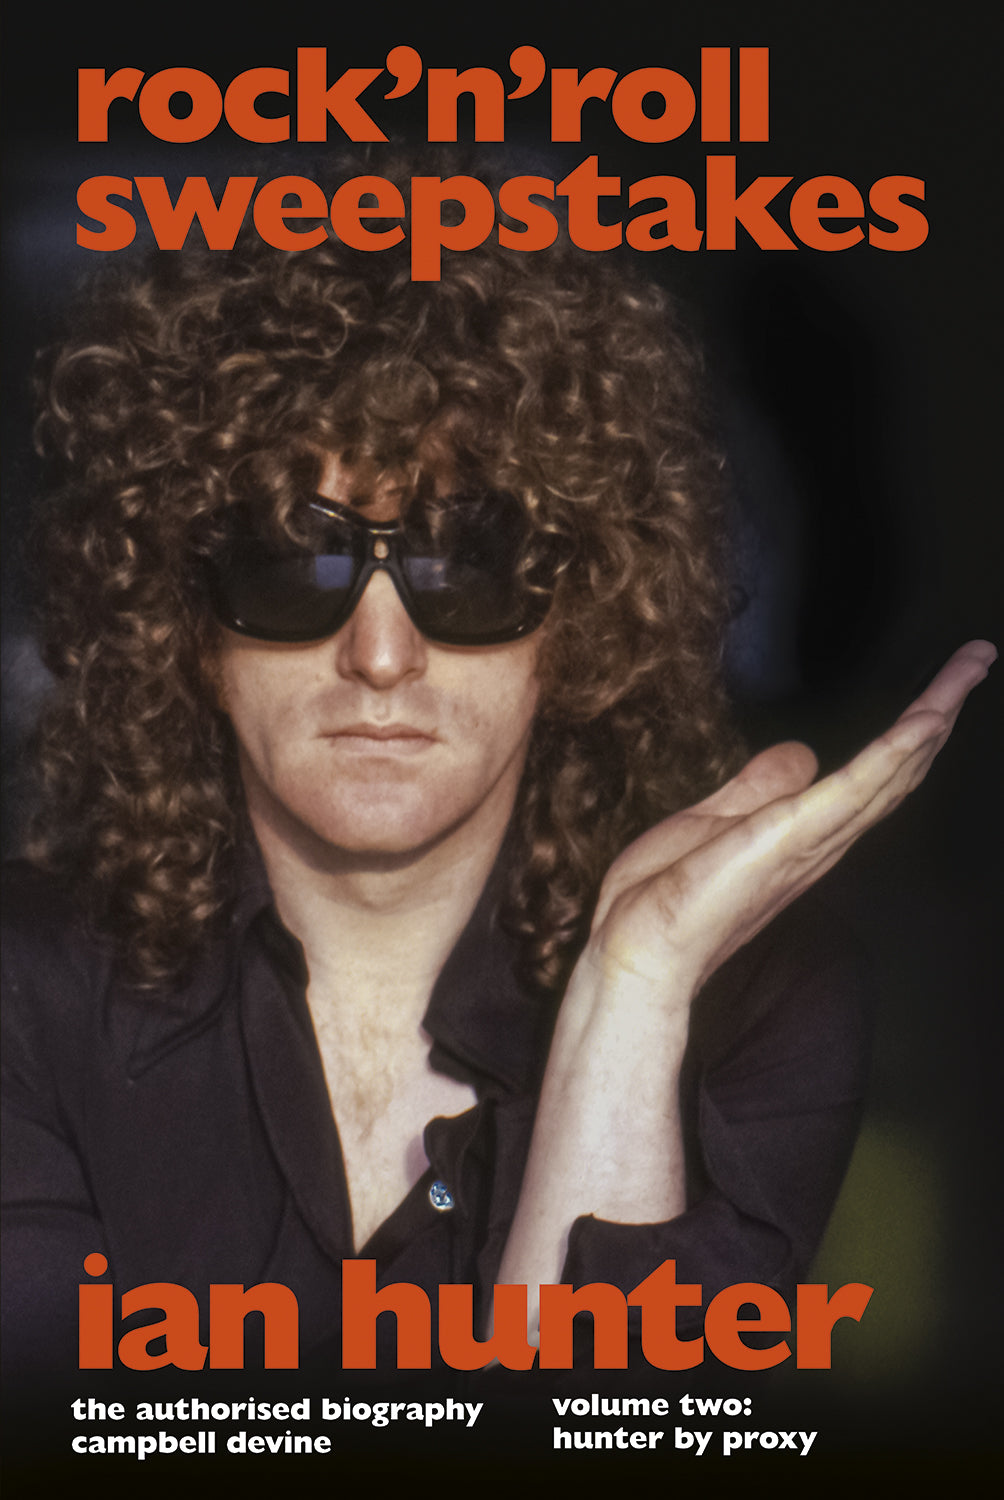 Rock 'n' Roll Sweepstakes: The Authorised Biography of Ian Hunter Volume Two: Hunter By Proxy - Published on 25th February 2021